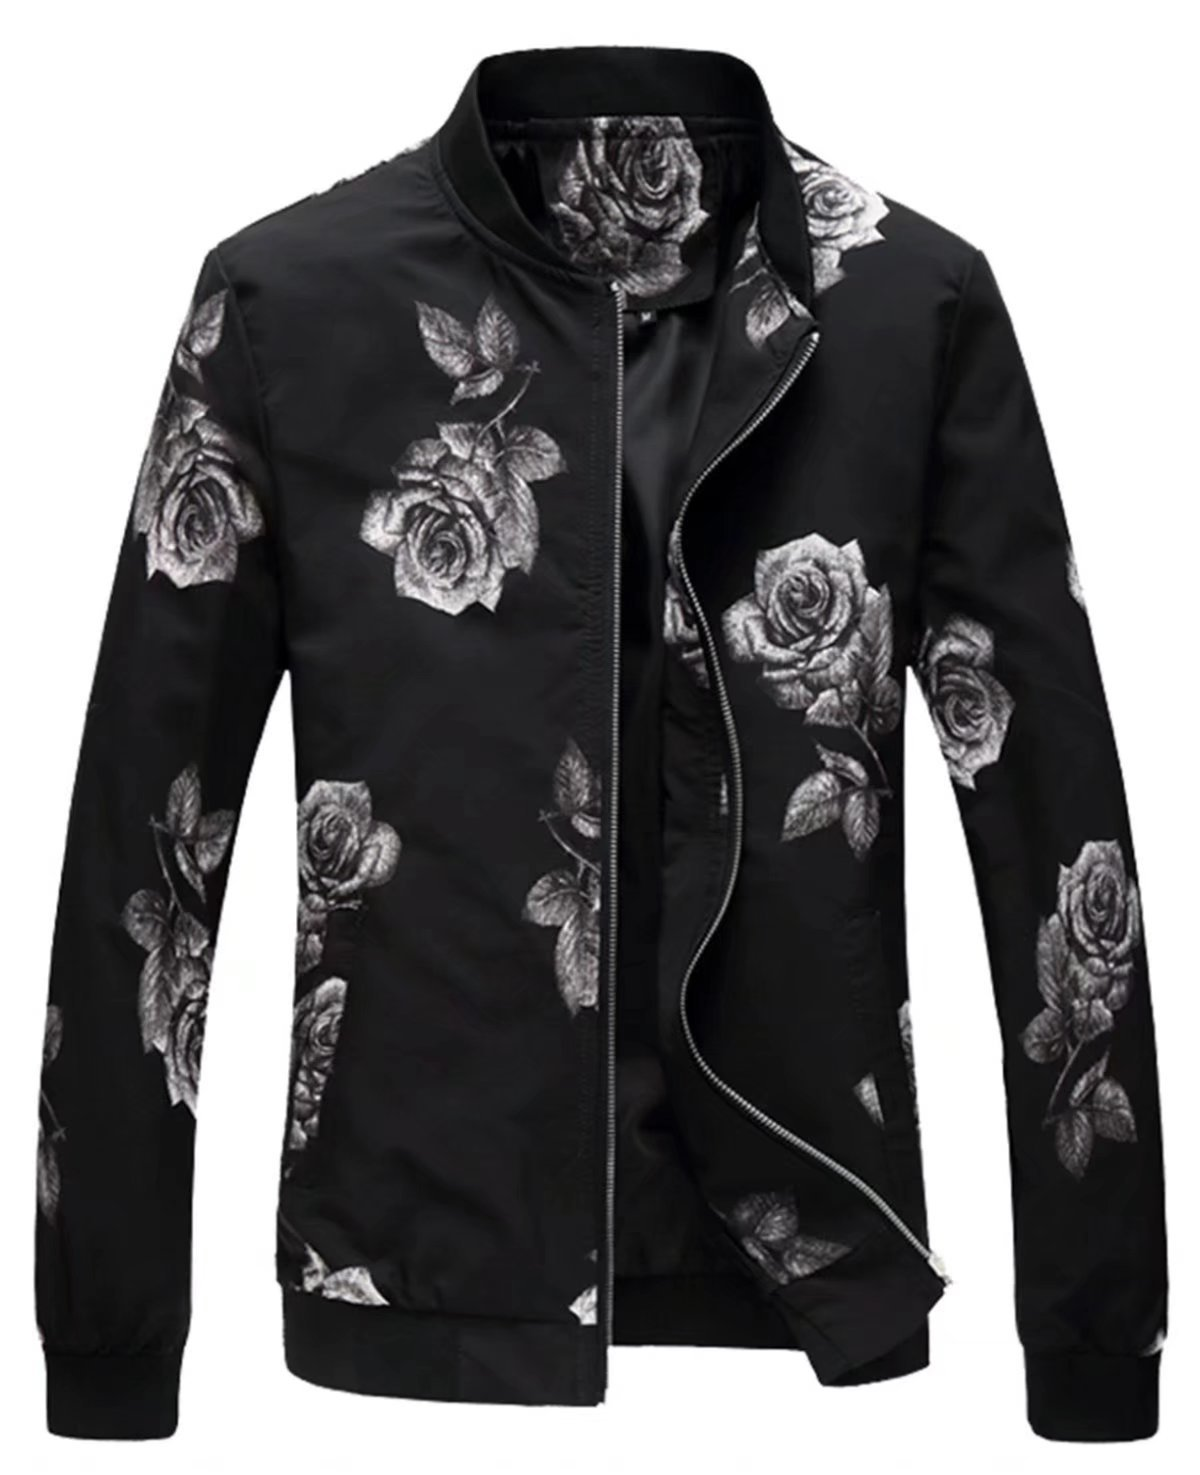 EMAOR Mens Men's Casual Flower Varsity Baseball Bomber Jacket Lightweight Floral Coat by EMAOR Mens